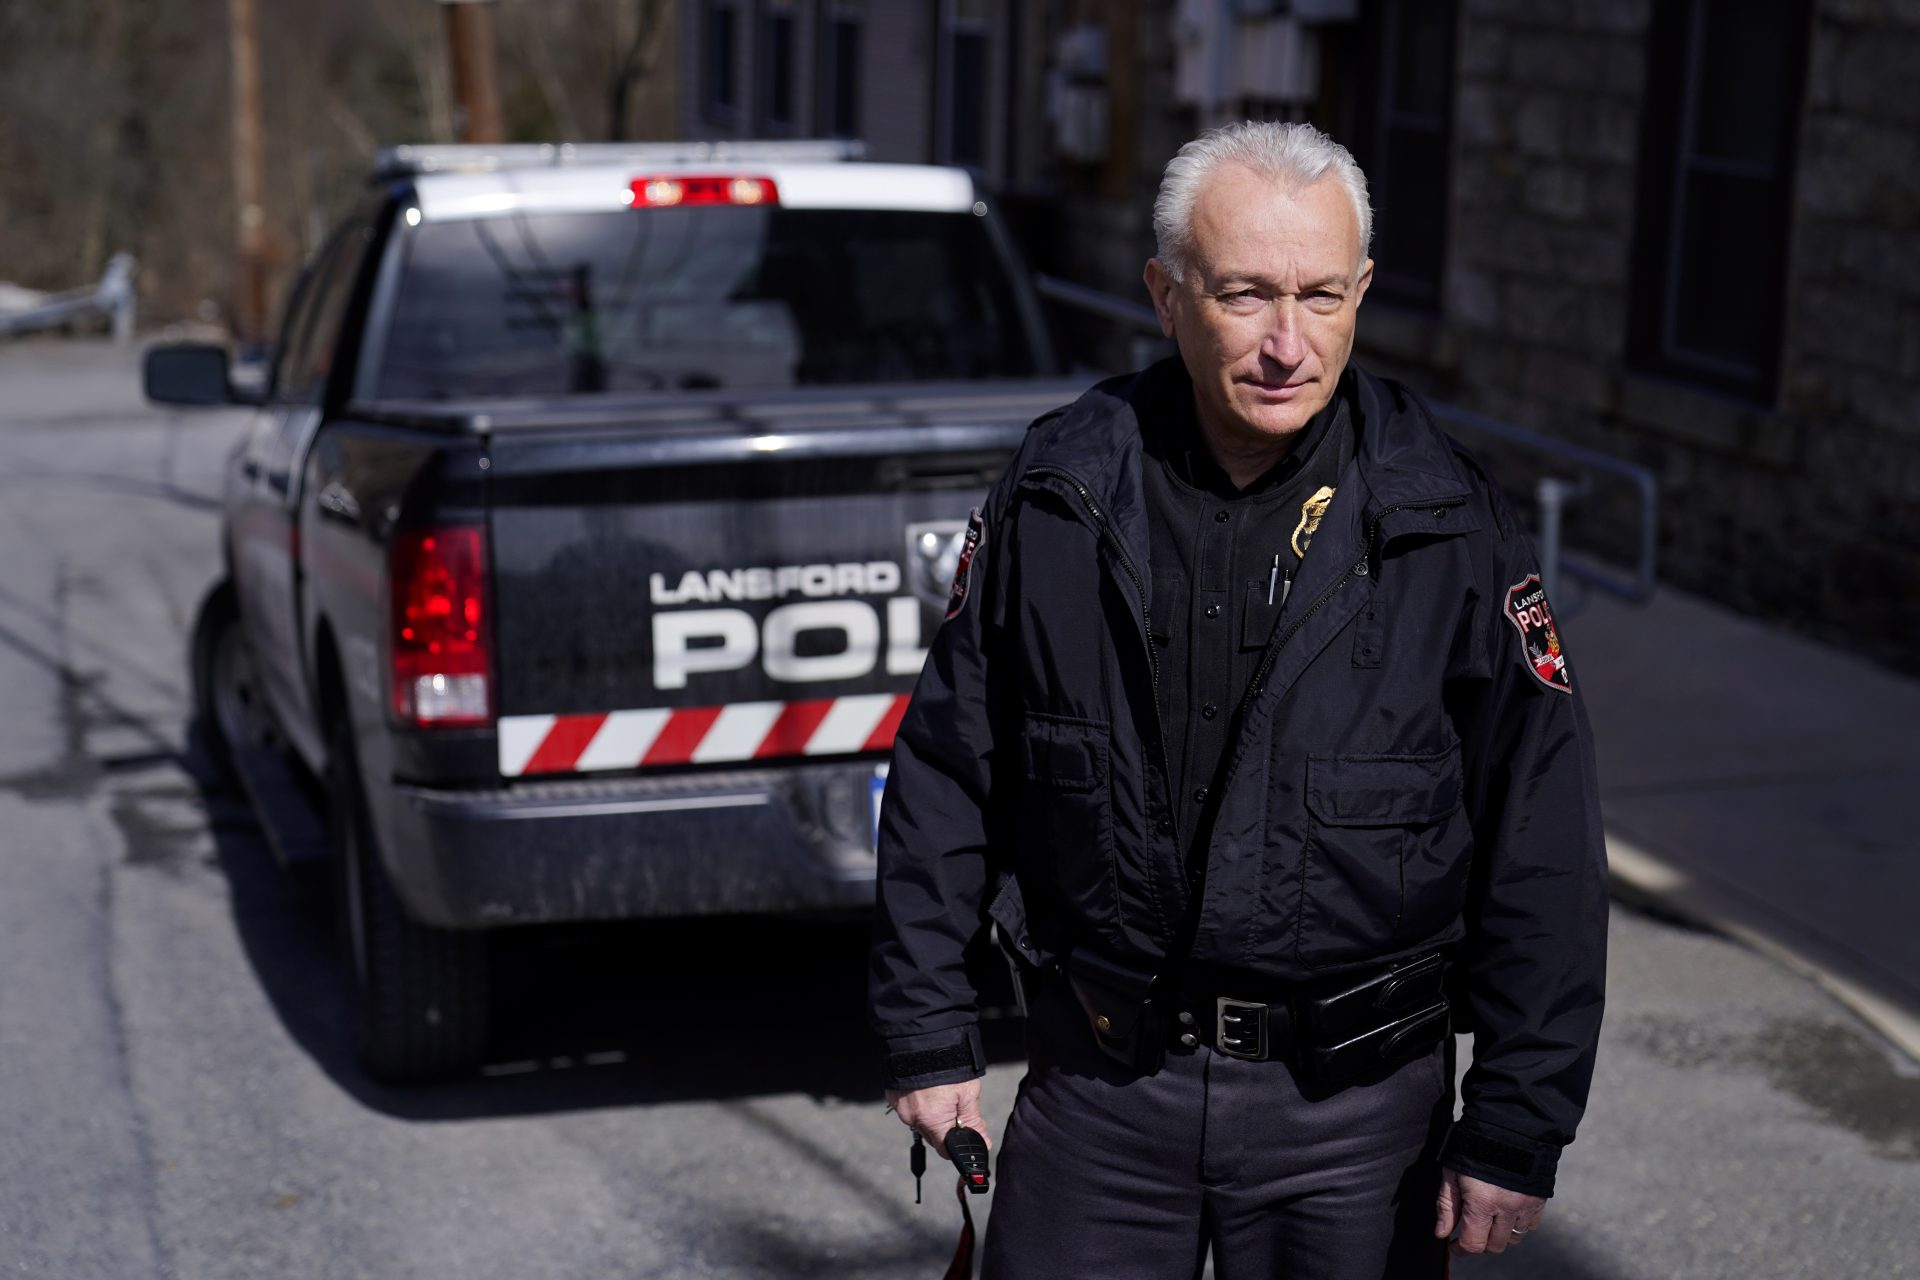 """Lansford Police Chief Jack Soberick stands next to his truck, Friday, March 12, 2021, in Lansford, Pa. On May 26, 2020, police found 9-year-old Ava Lerario; her mother, Ashley Belson, and Ava's father, Marc Lerario, fatally shot inside their home. Soberick was the first to respond to the scene. """"I don't believe this would have happened this way if not for the pandemic pushing him beyond the brink,"""" Soberick said of Marc Lerario. """"I wish Marc would have gotten treatment for the bipolar disorder."""""""